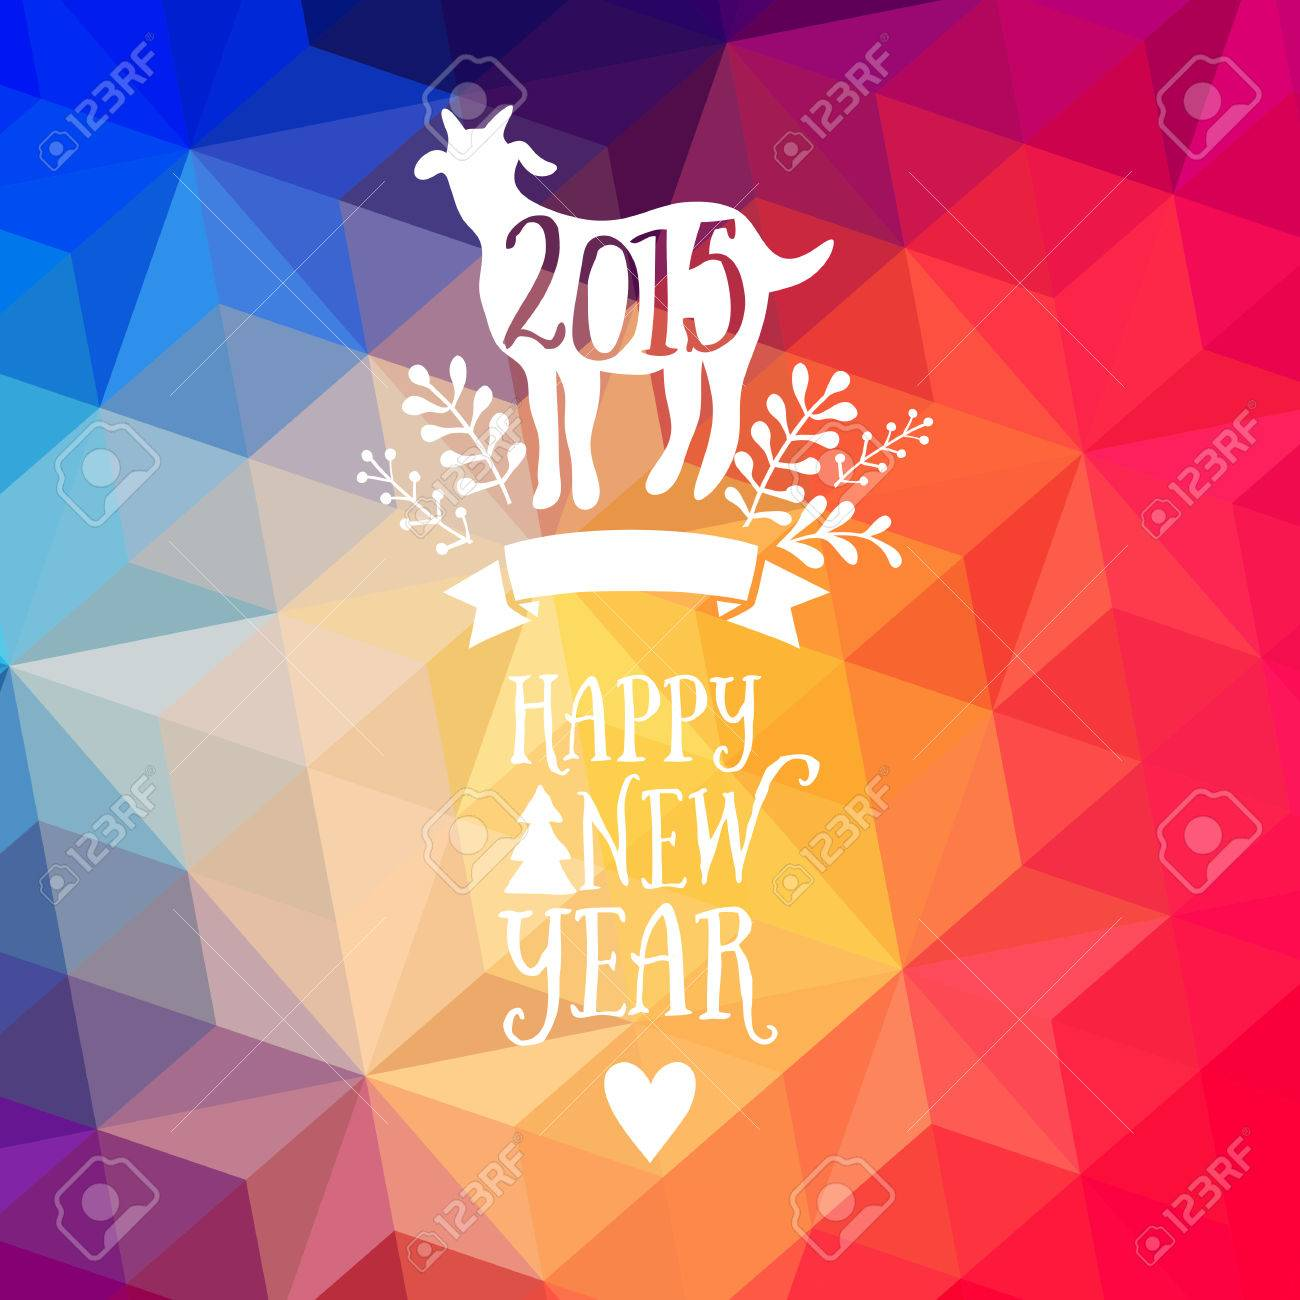 happy new year and merry christmas design geometric backdrop typography composition with lettering